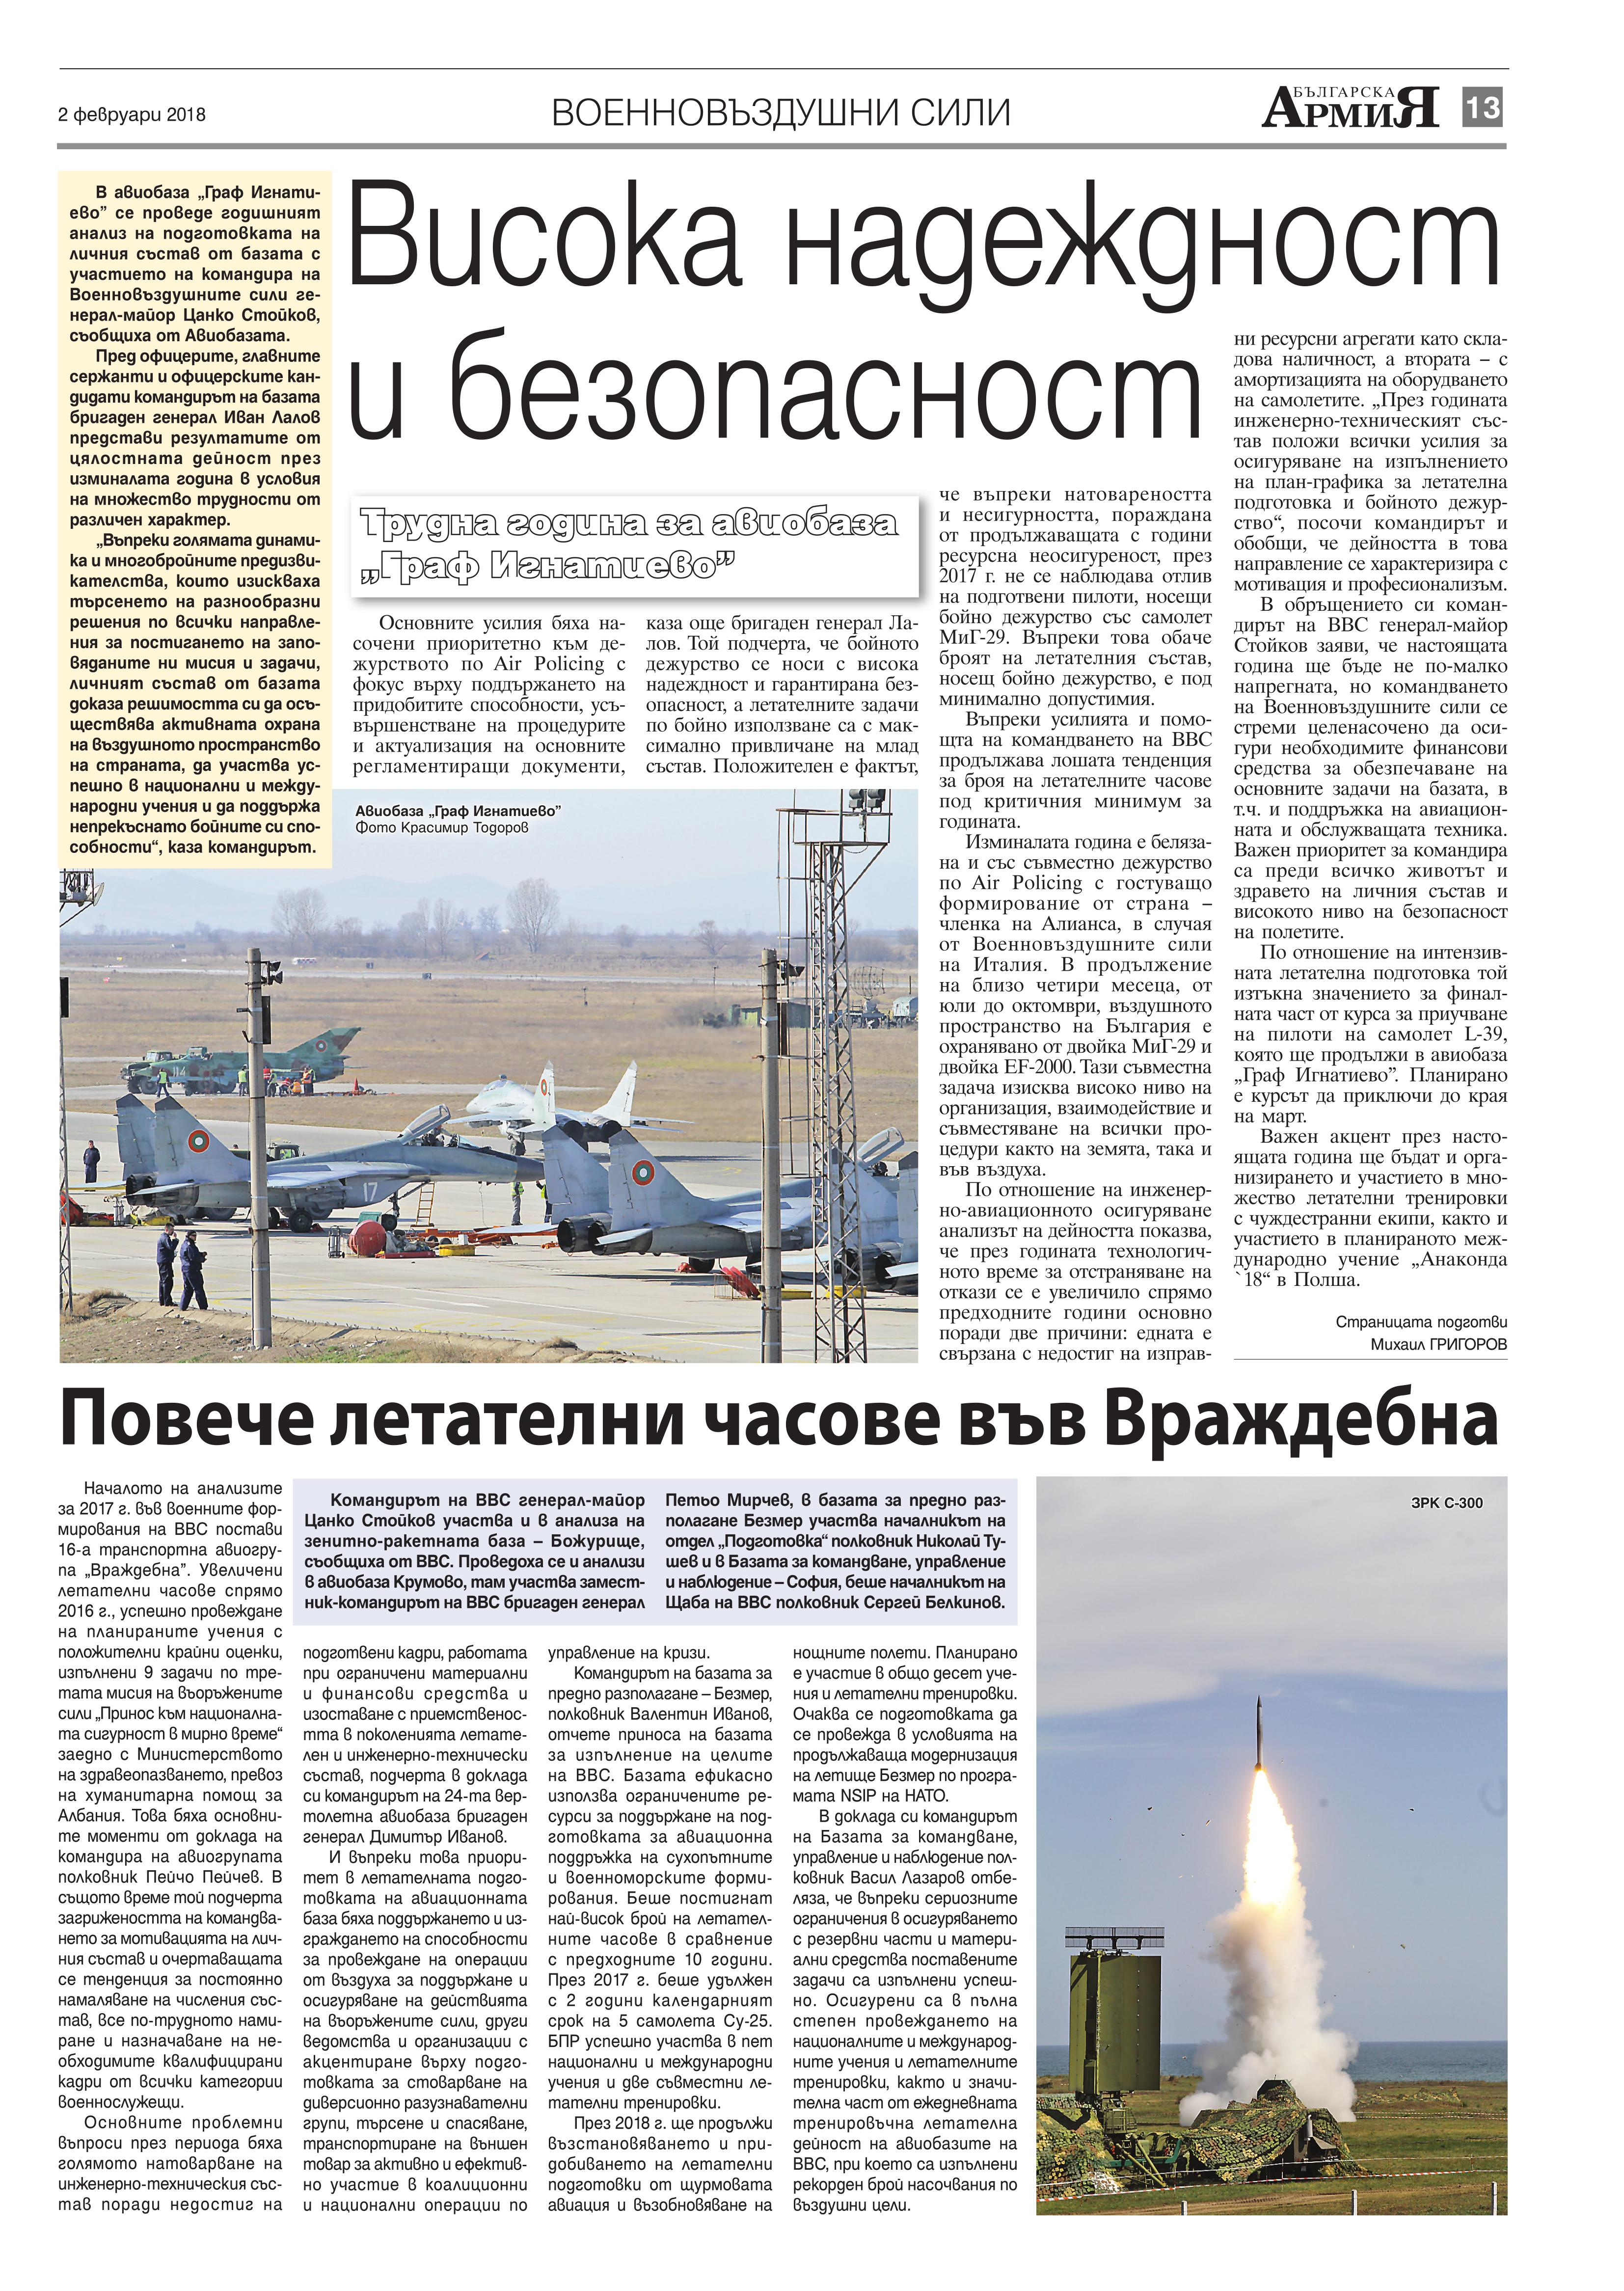 https://armymedia.bg/wp-content/uploads/2015/06/13.page1_-38.jpg